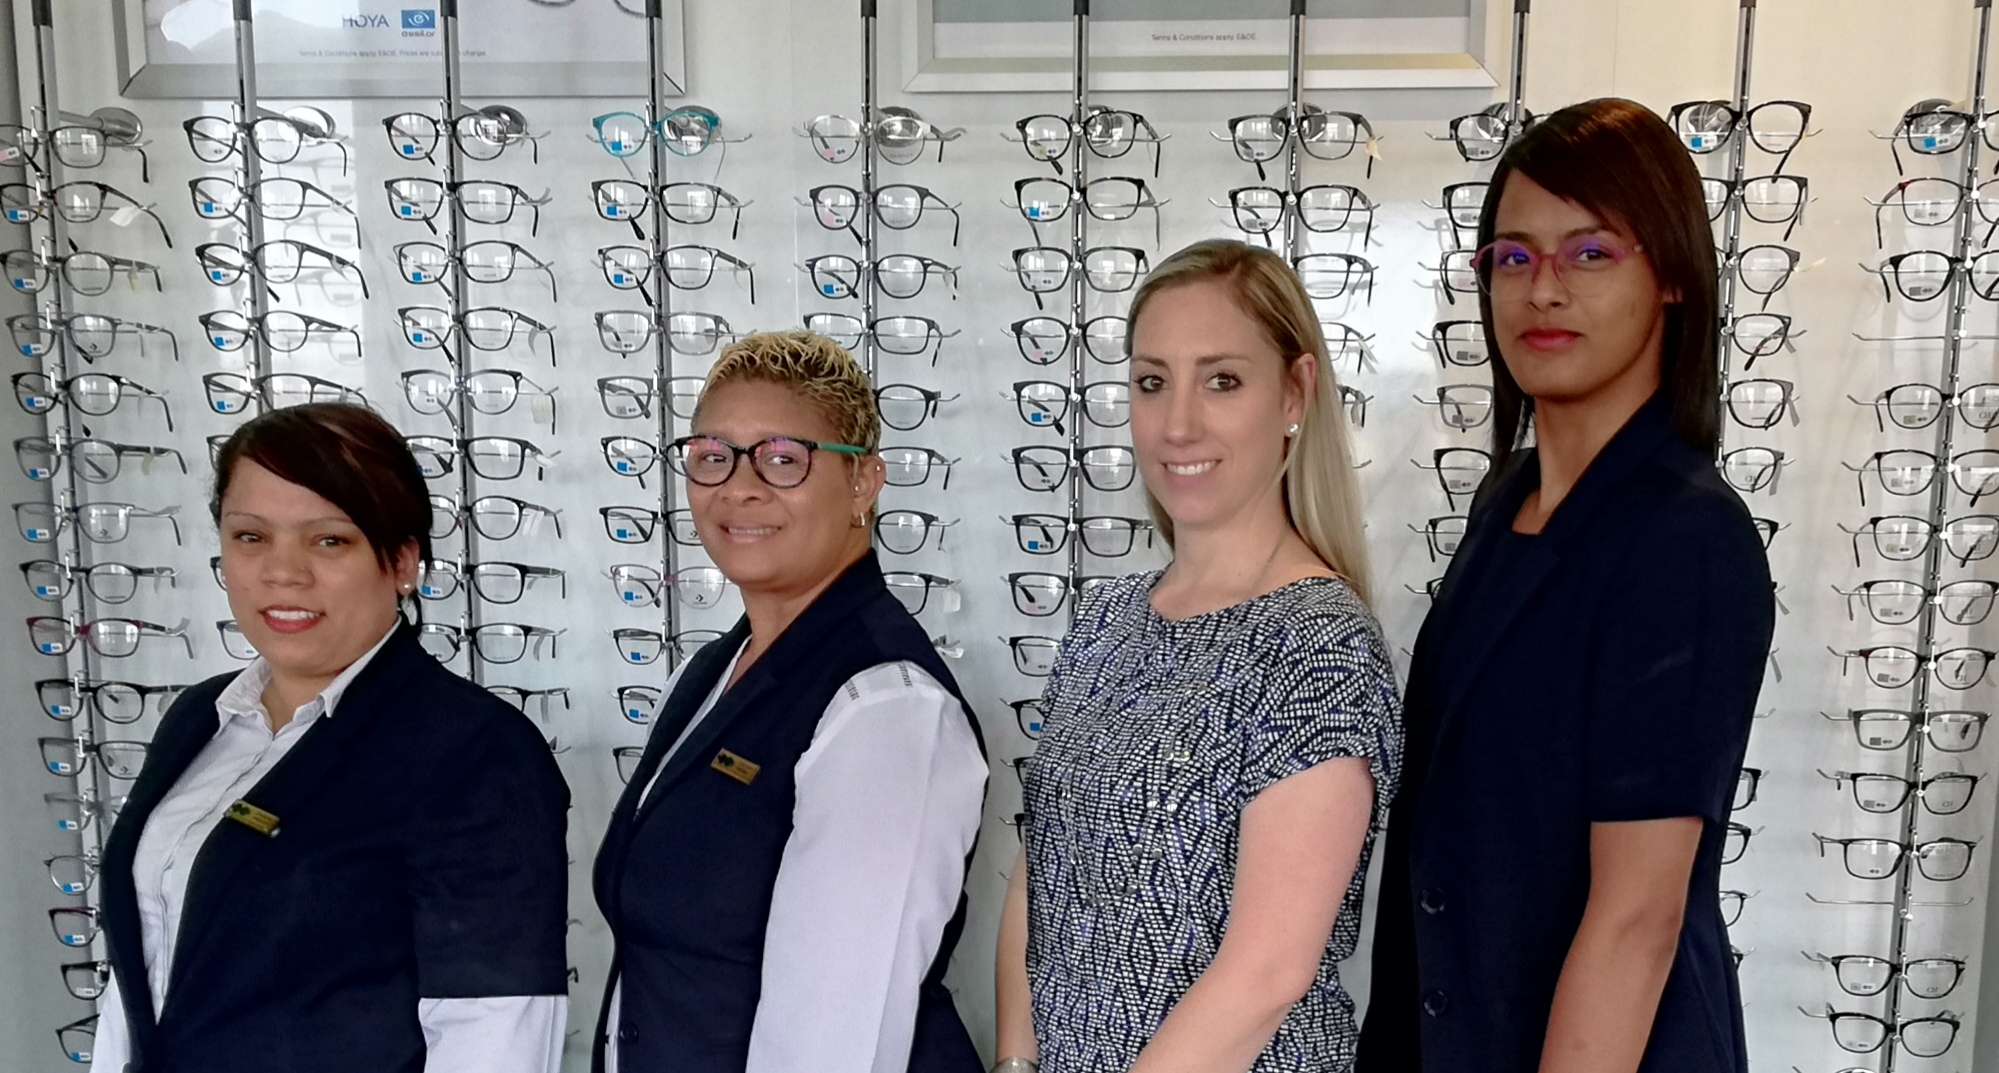 Chantel Jonkers, Desiree Daames, Chanteléze Brockett and Ruwaida Koran is our friendly team at Specsavers Brackenfell in Fairbridge Mall. This ladies believe in quality optical care.